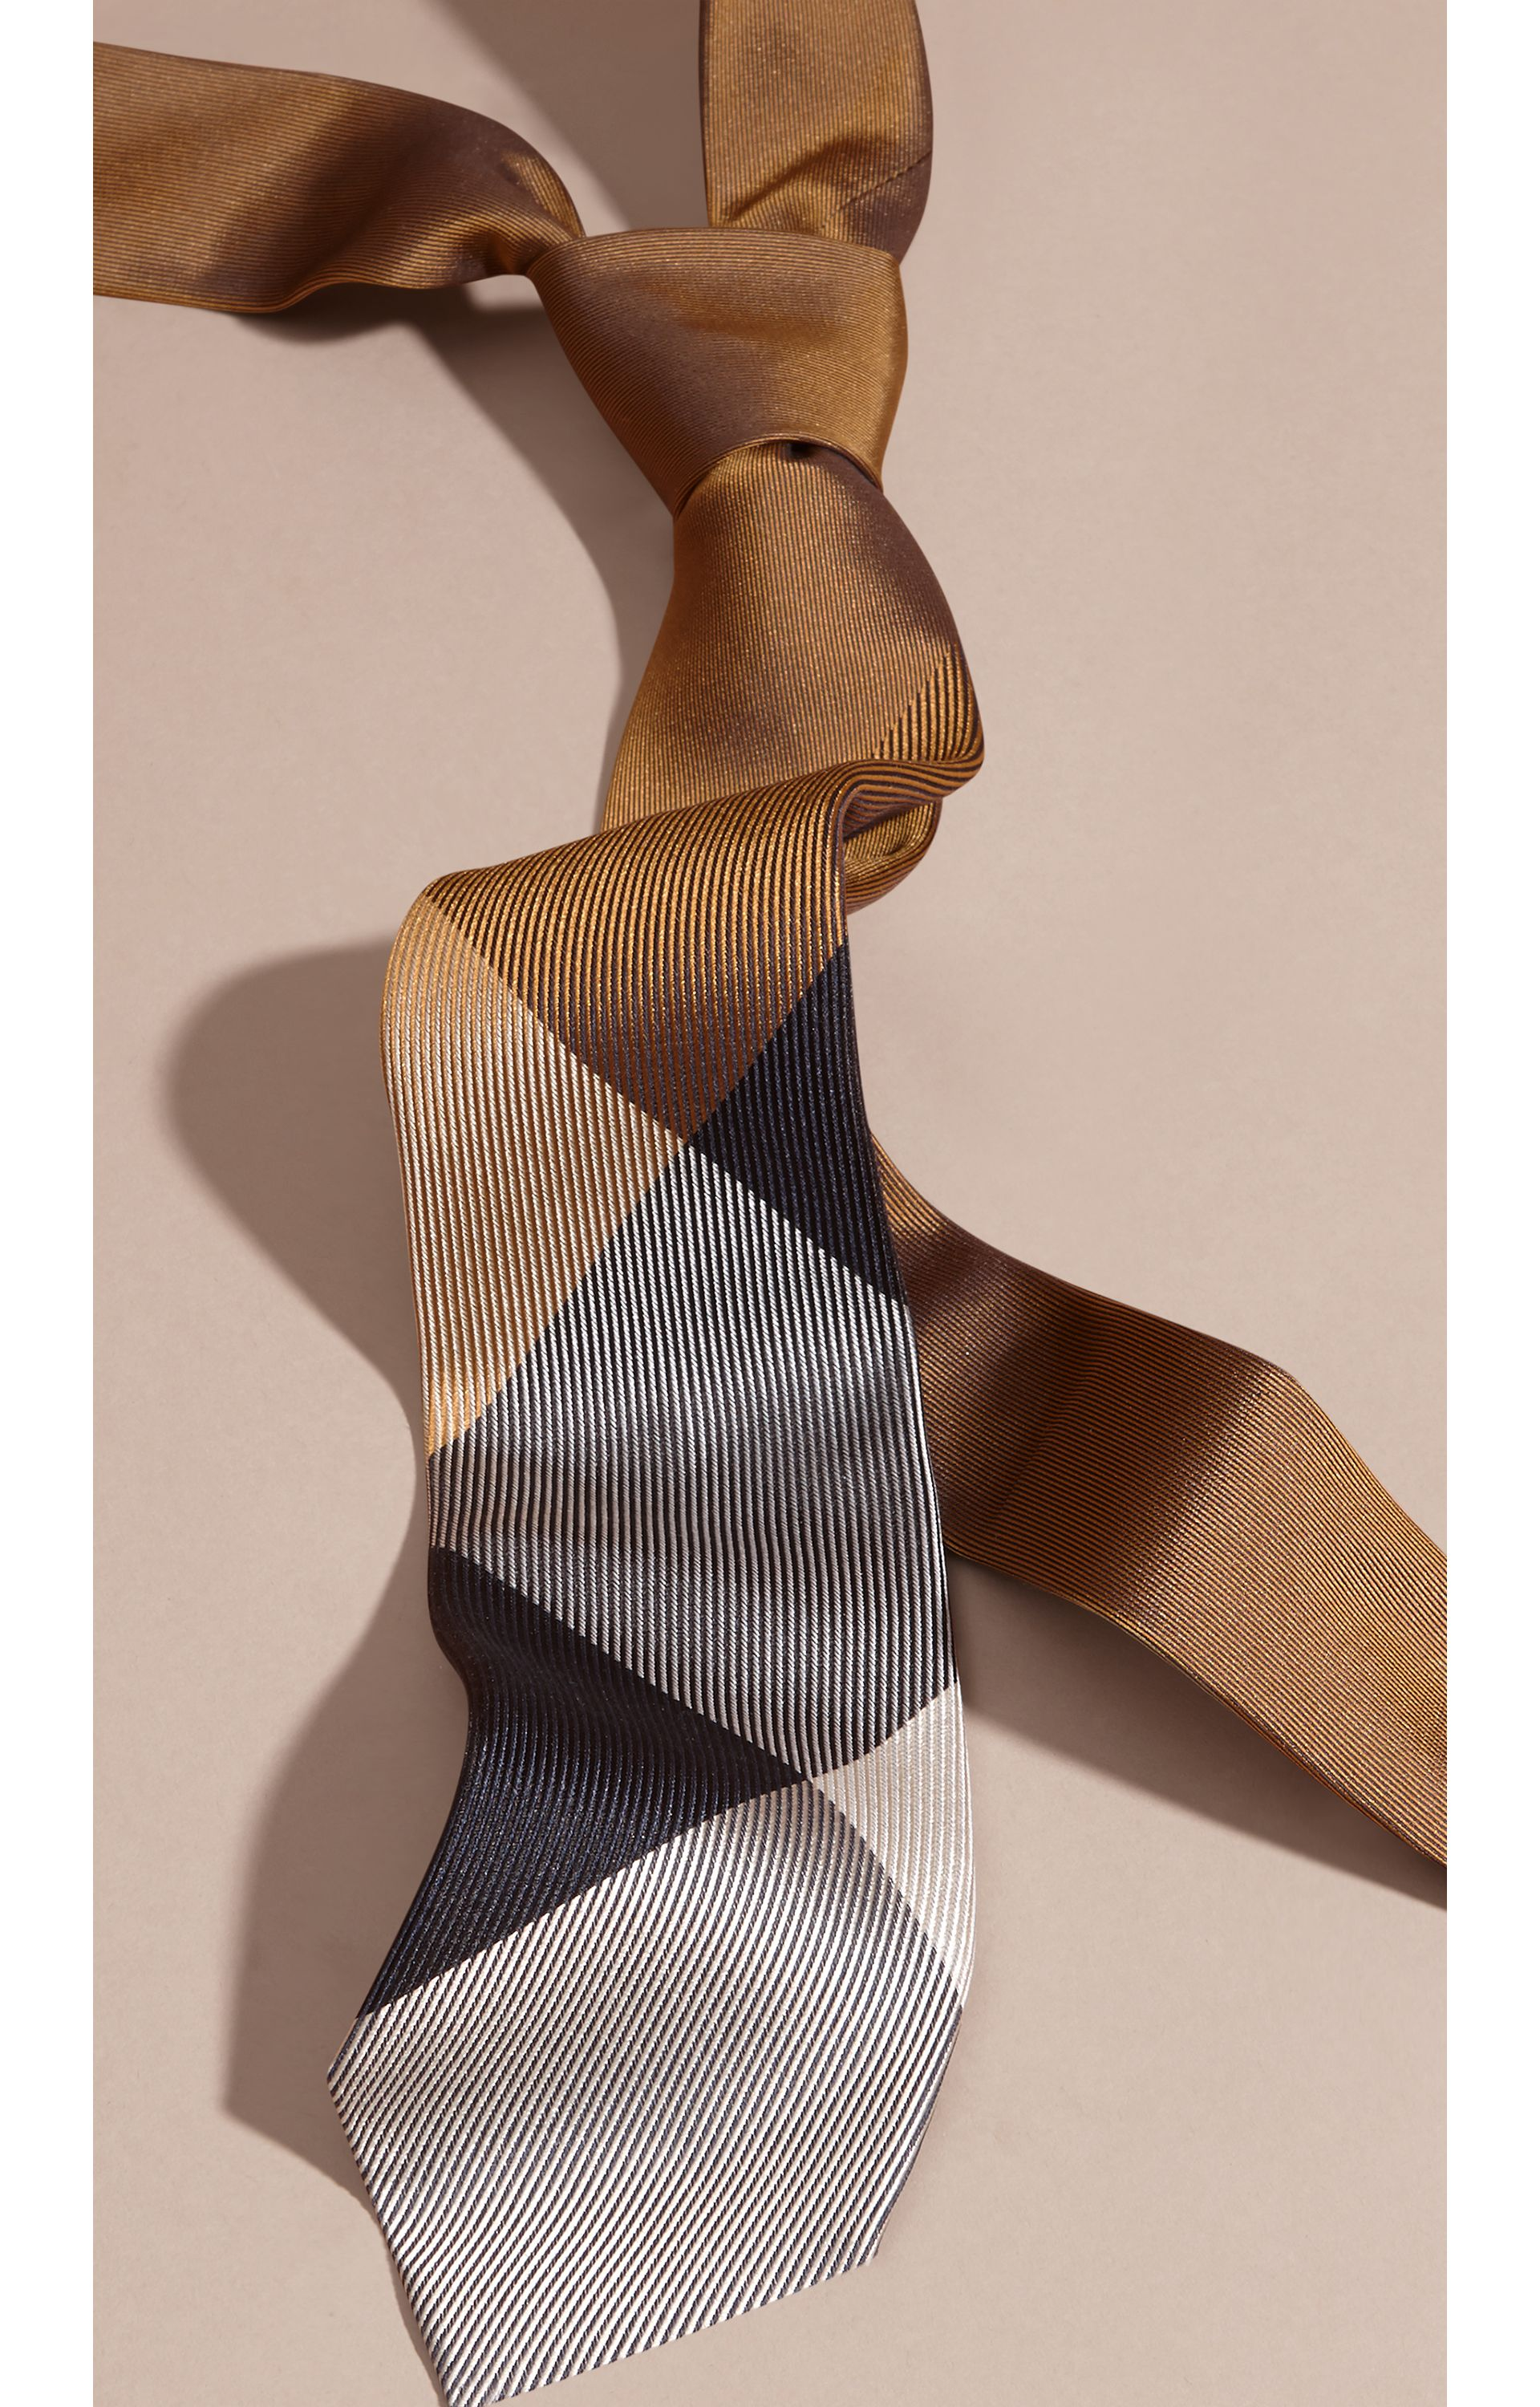 Ochre brown Modern Cut Check Jacquard Silk Tie Ochre Brown - gallery image 3